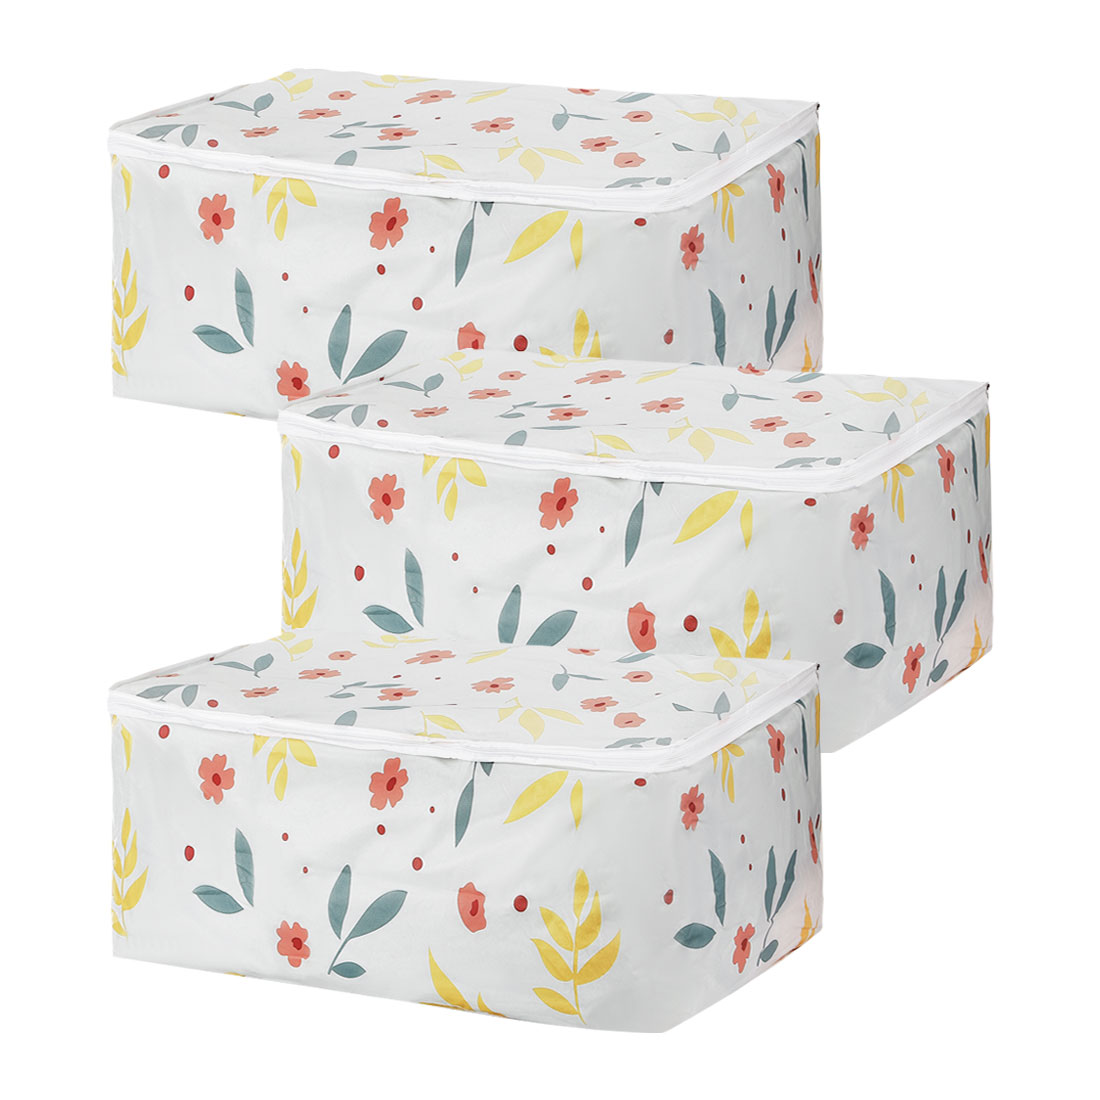 23.6 x 15.7 x 10 Inch Quilt Storage Bag Cloths Container for Closet Bedroom 3pcs